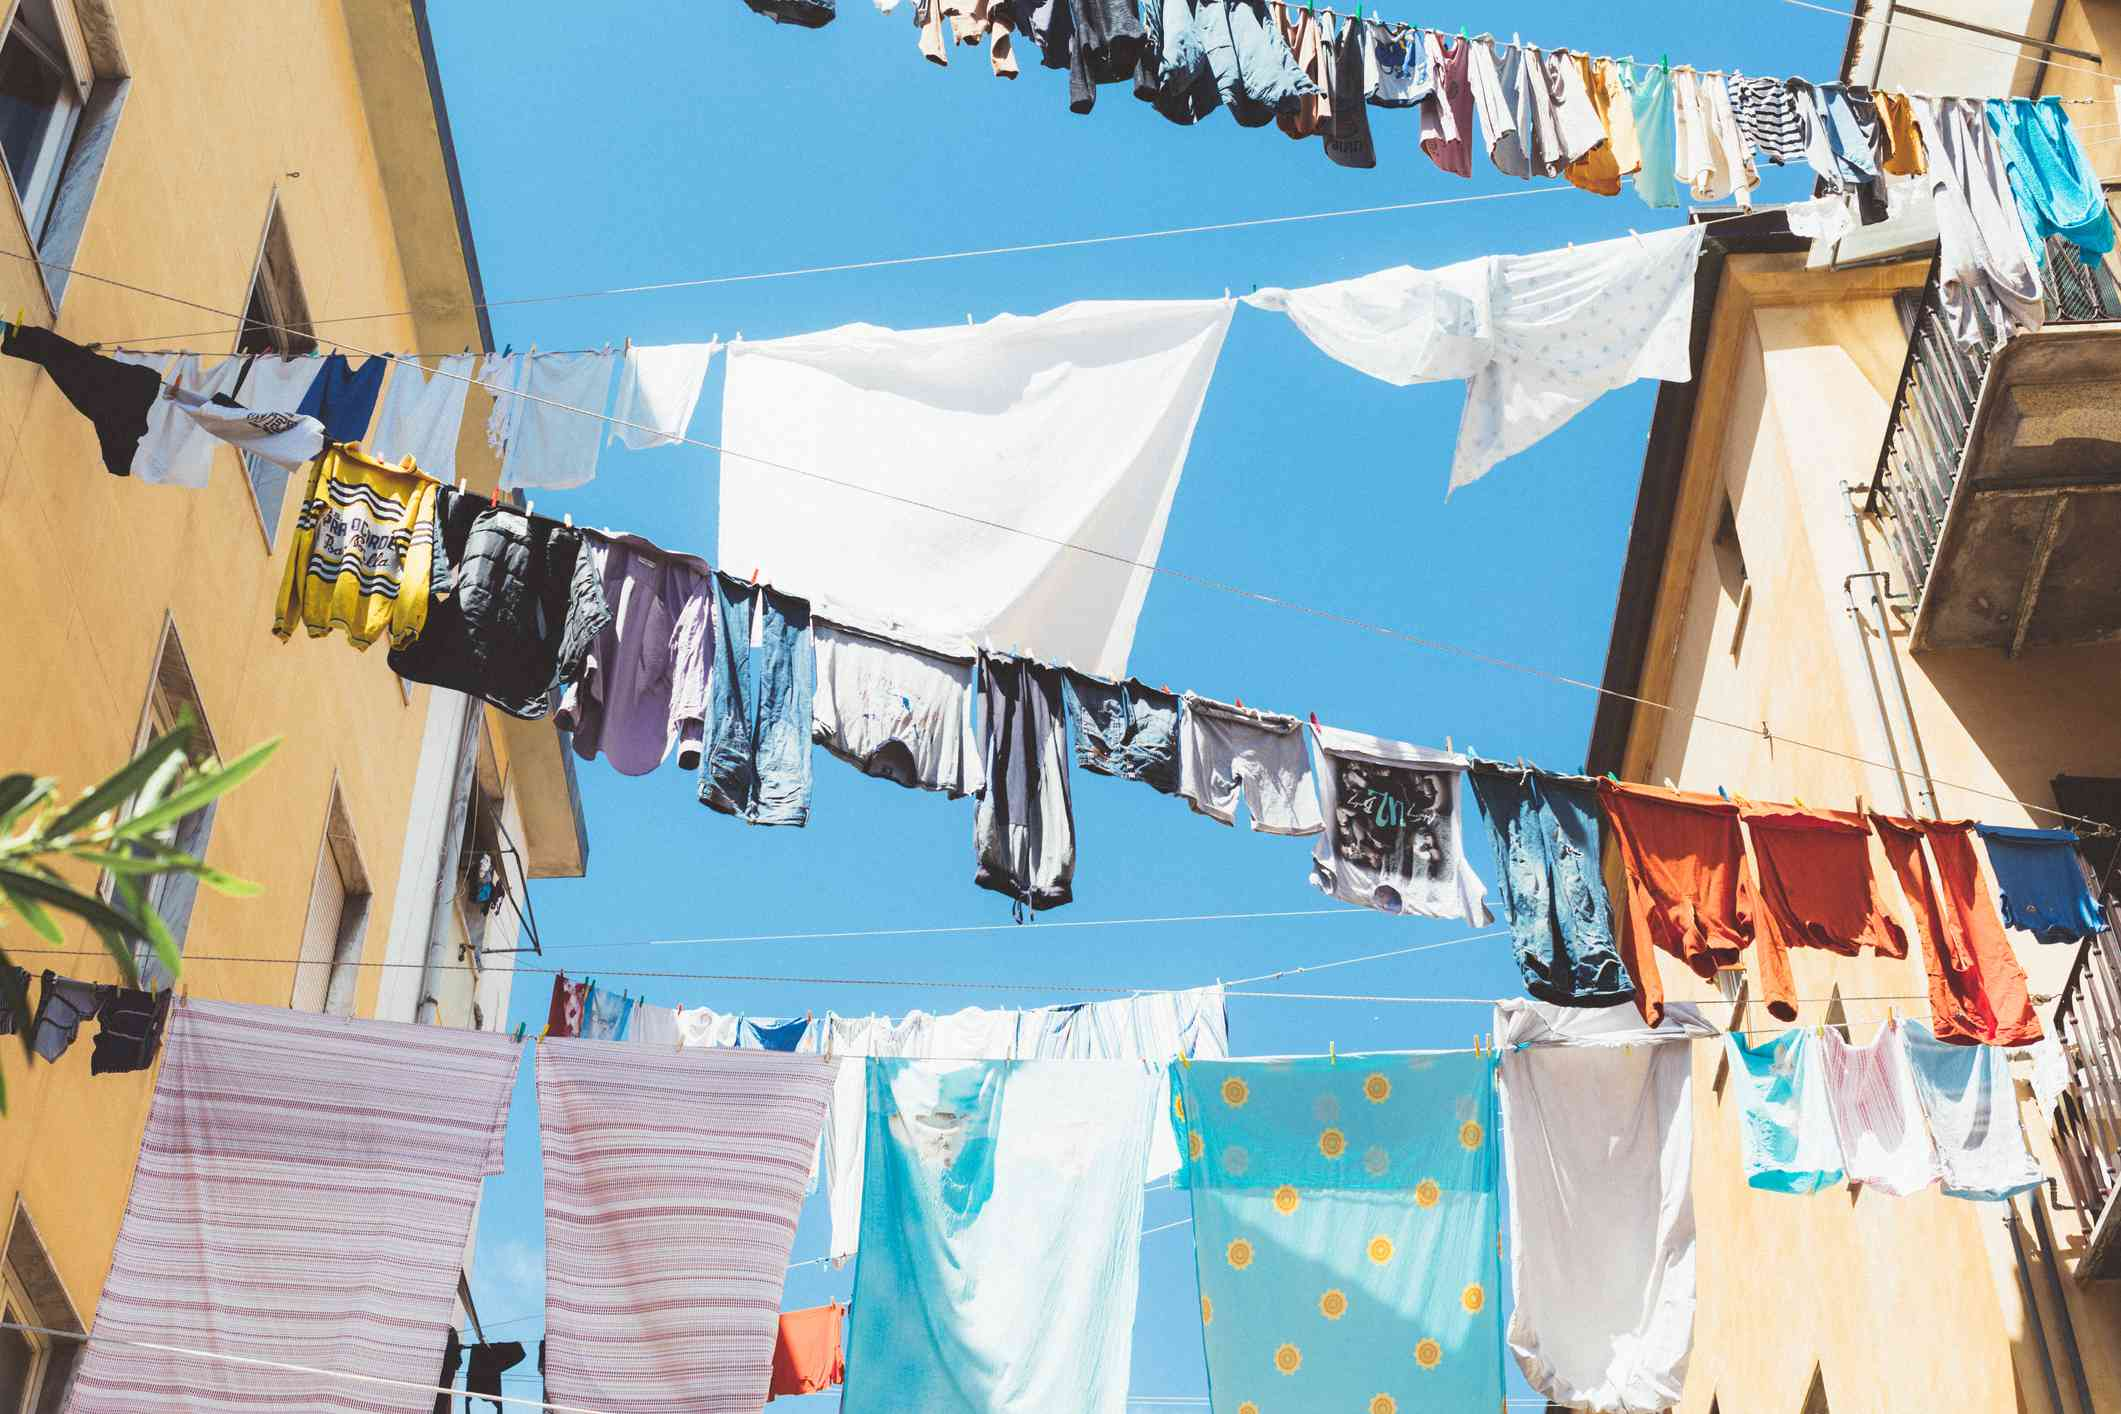 Clothes hanging on lines stretching across buildings.